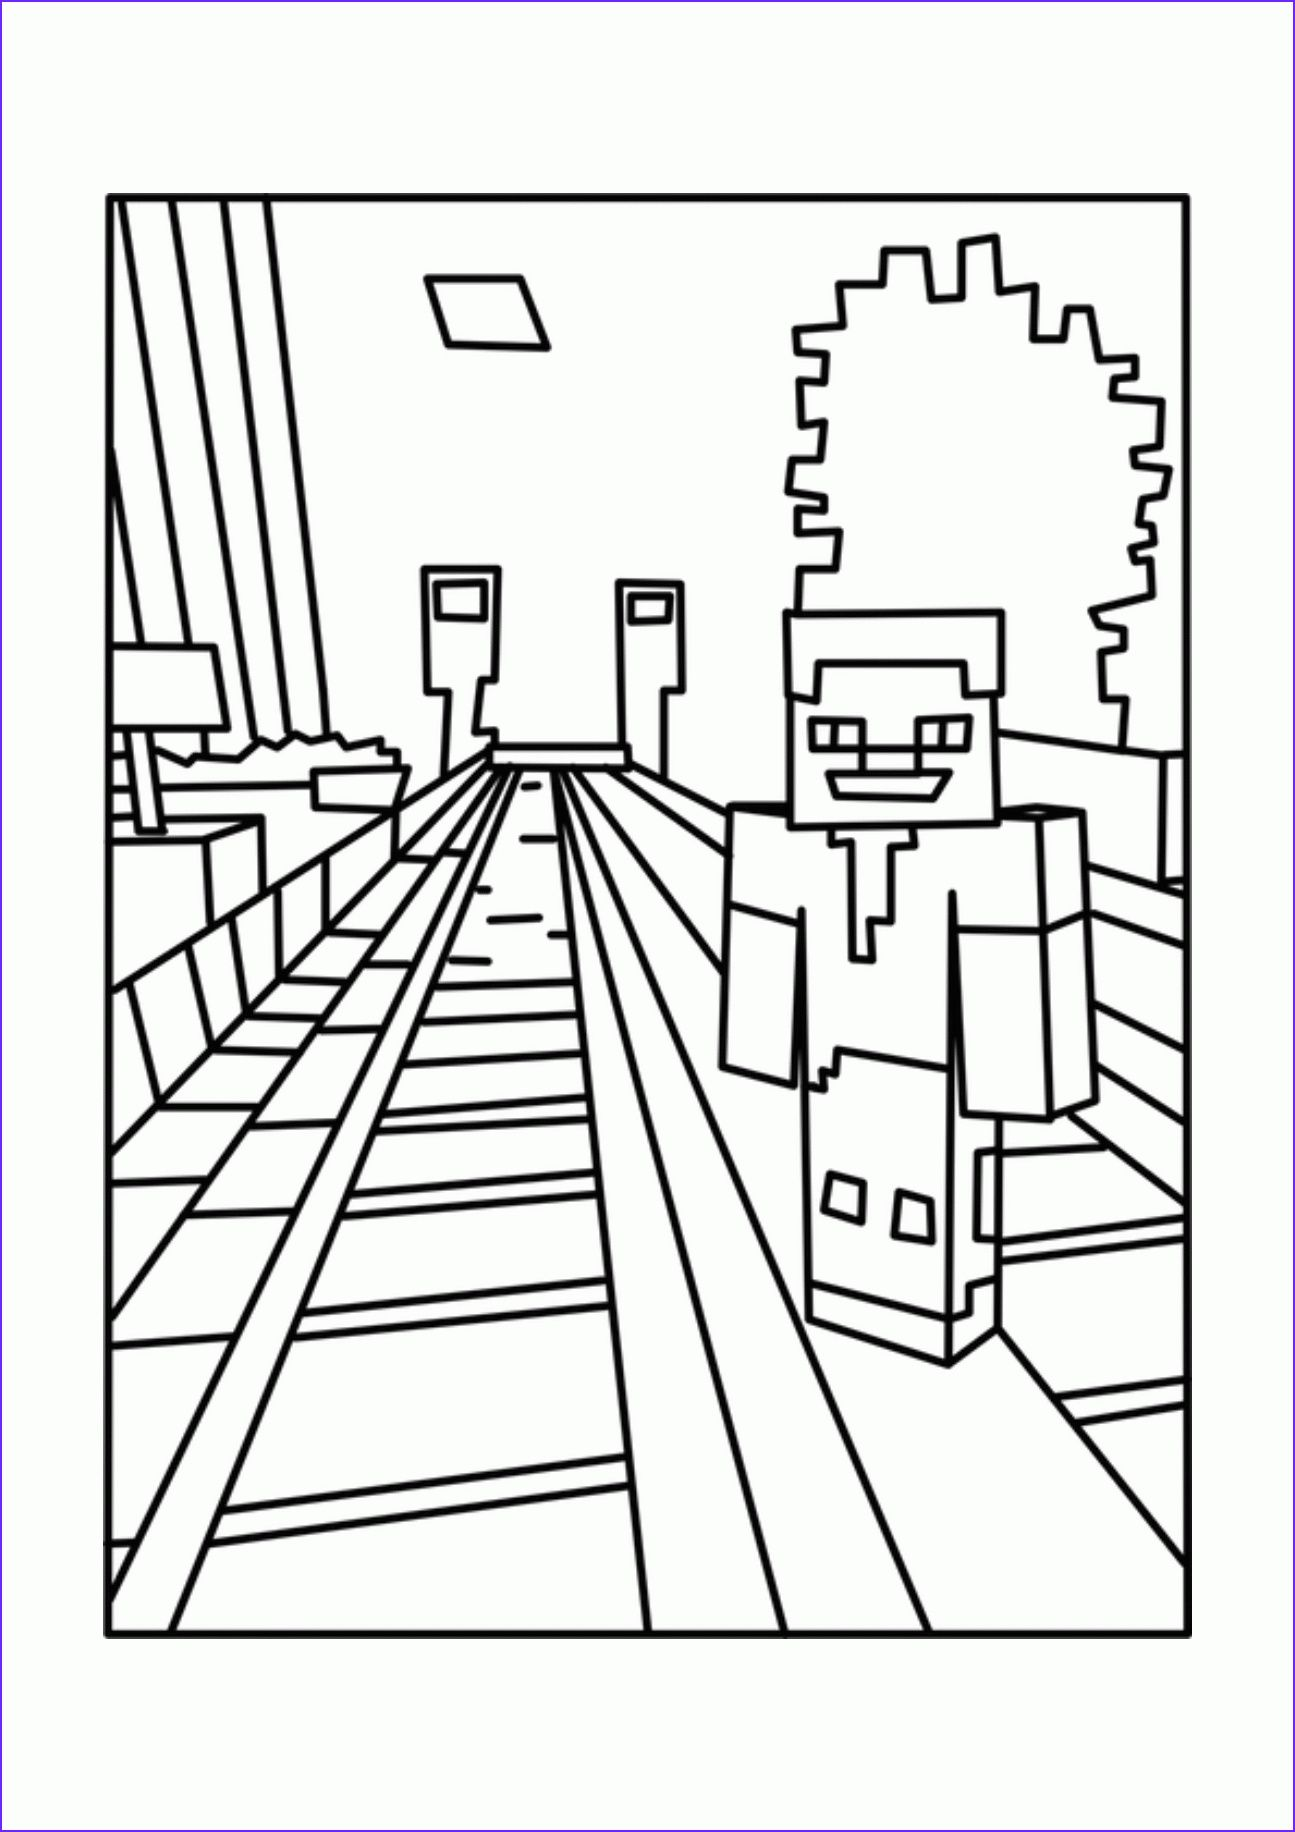 14 Beautiful Gallery Of Coloring Page For Minecraft Minecraft Coloring Pages Coloring Pages For Teenagers Fnaf Coloring Pages